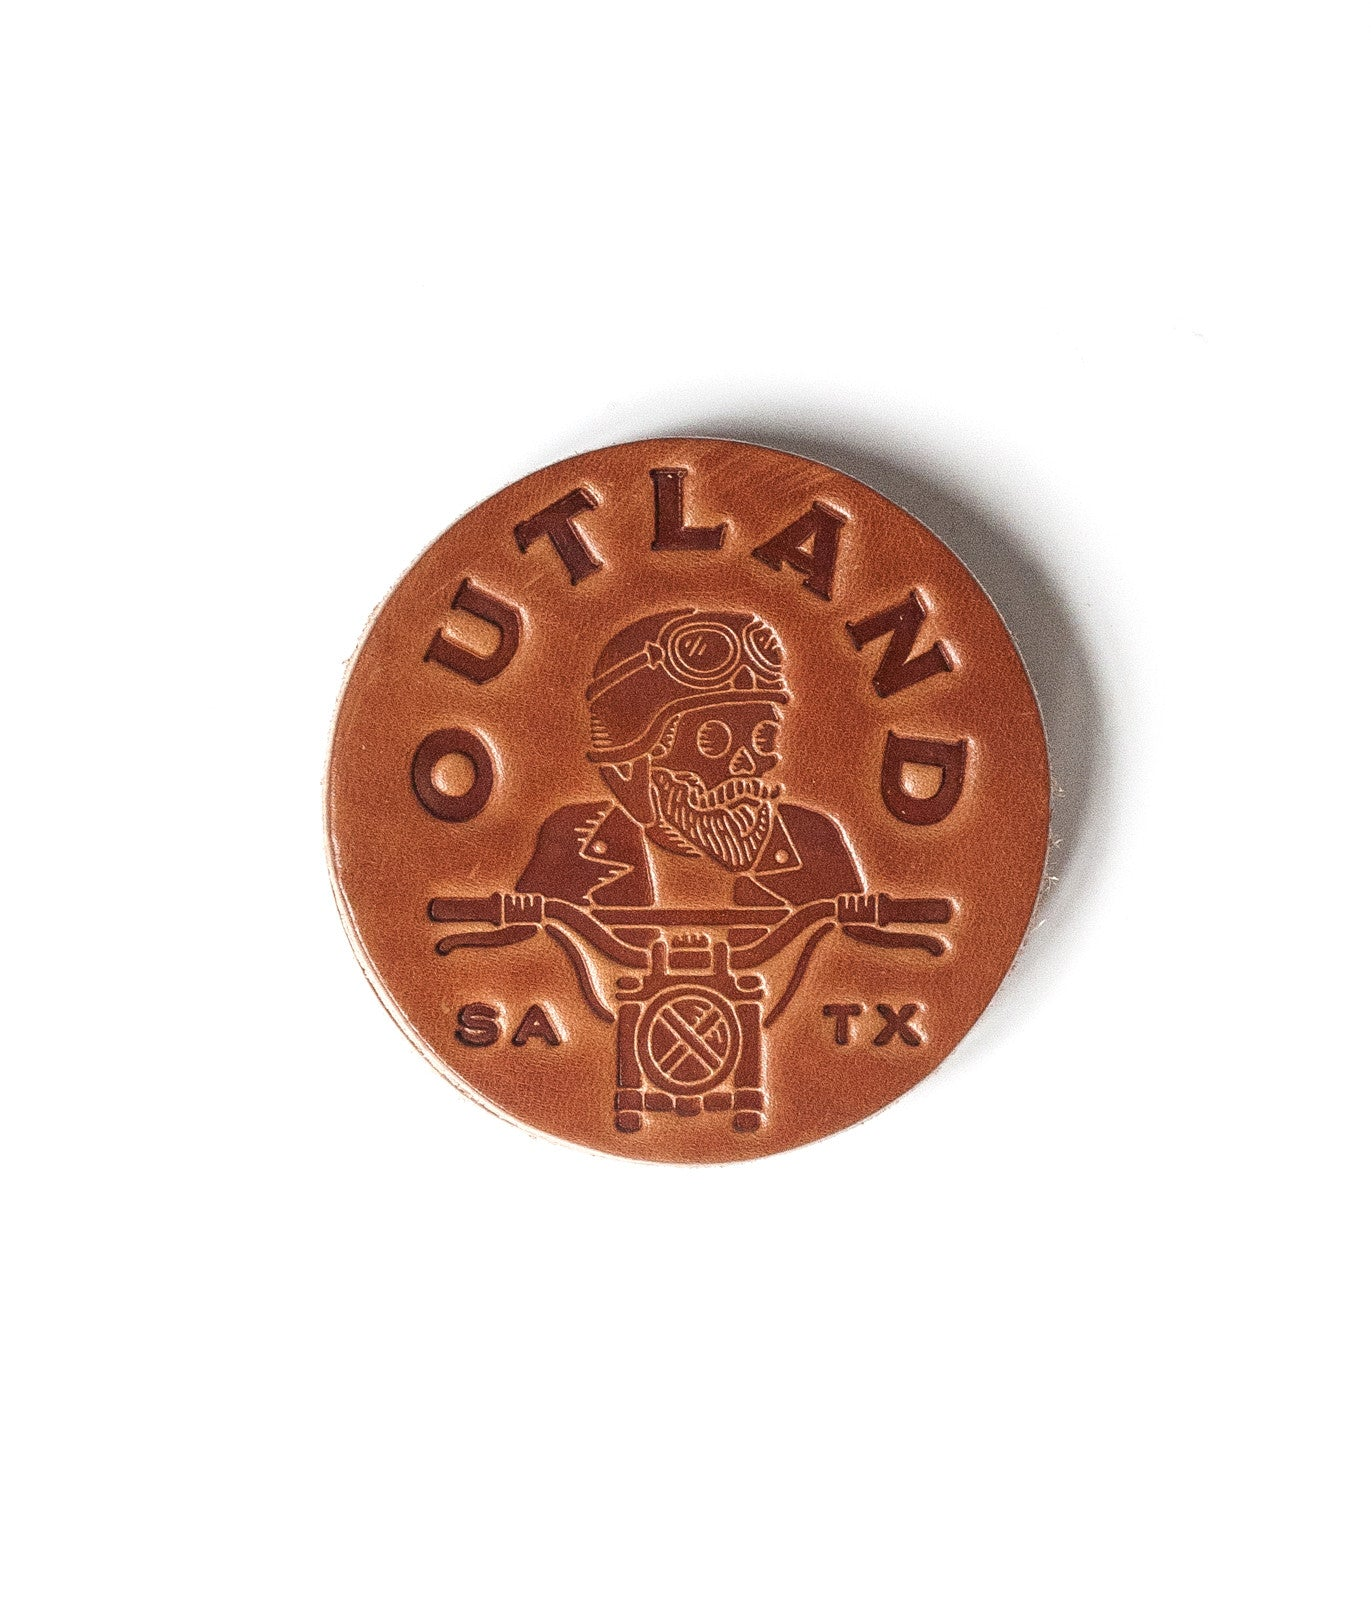 Outland Moto Leather Coasters - Ships in 2+ Weeks